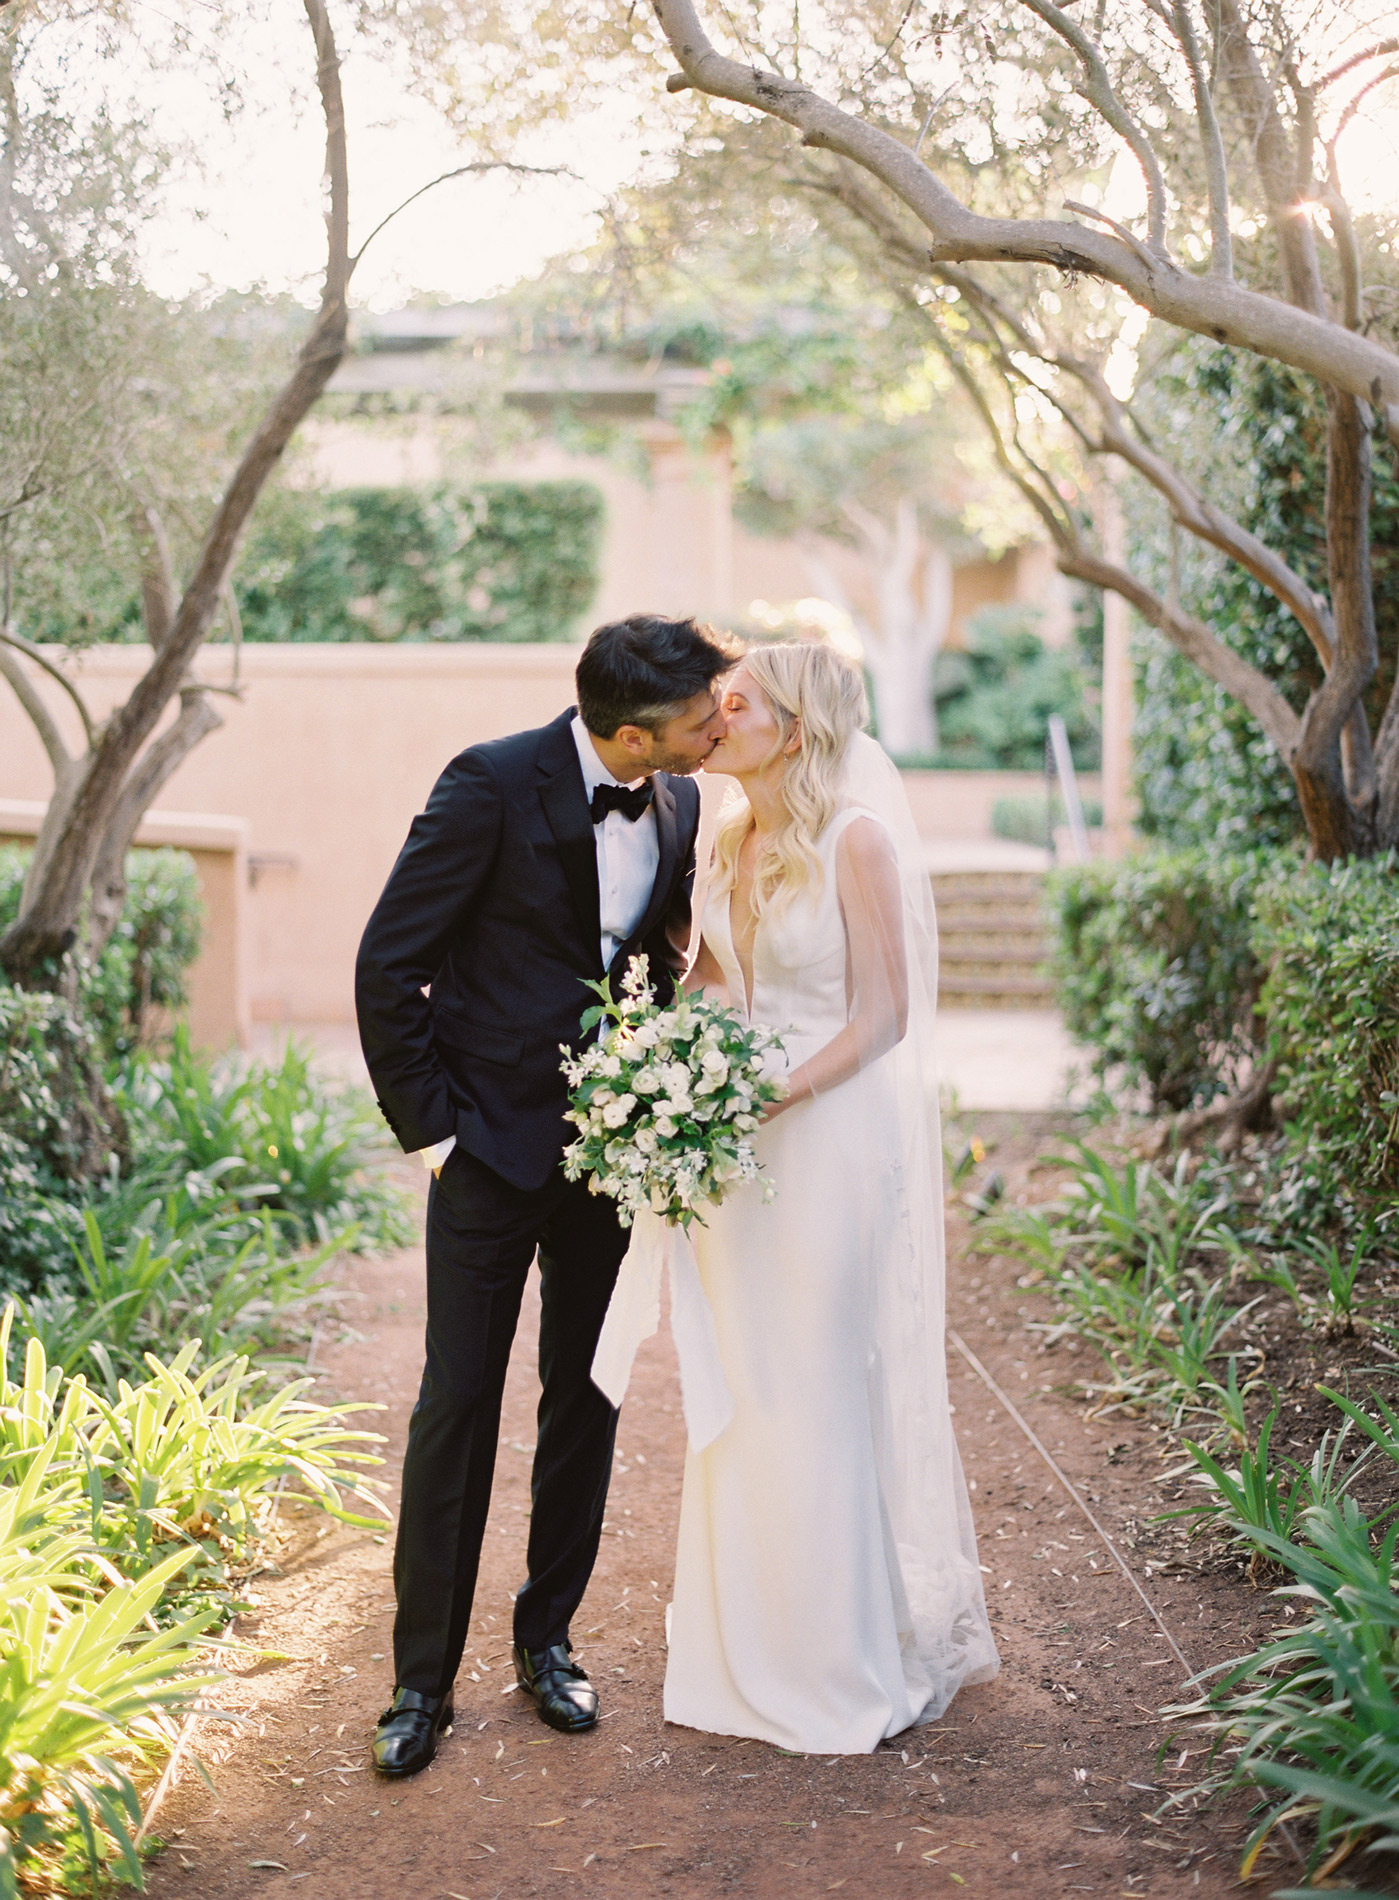 wedding couple kissing on pathway under trees